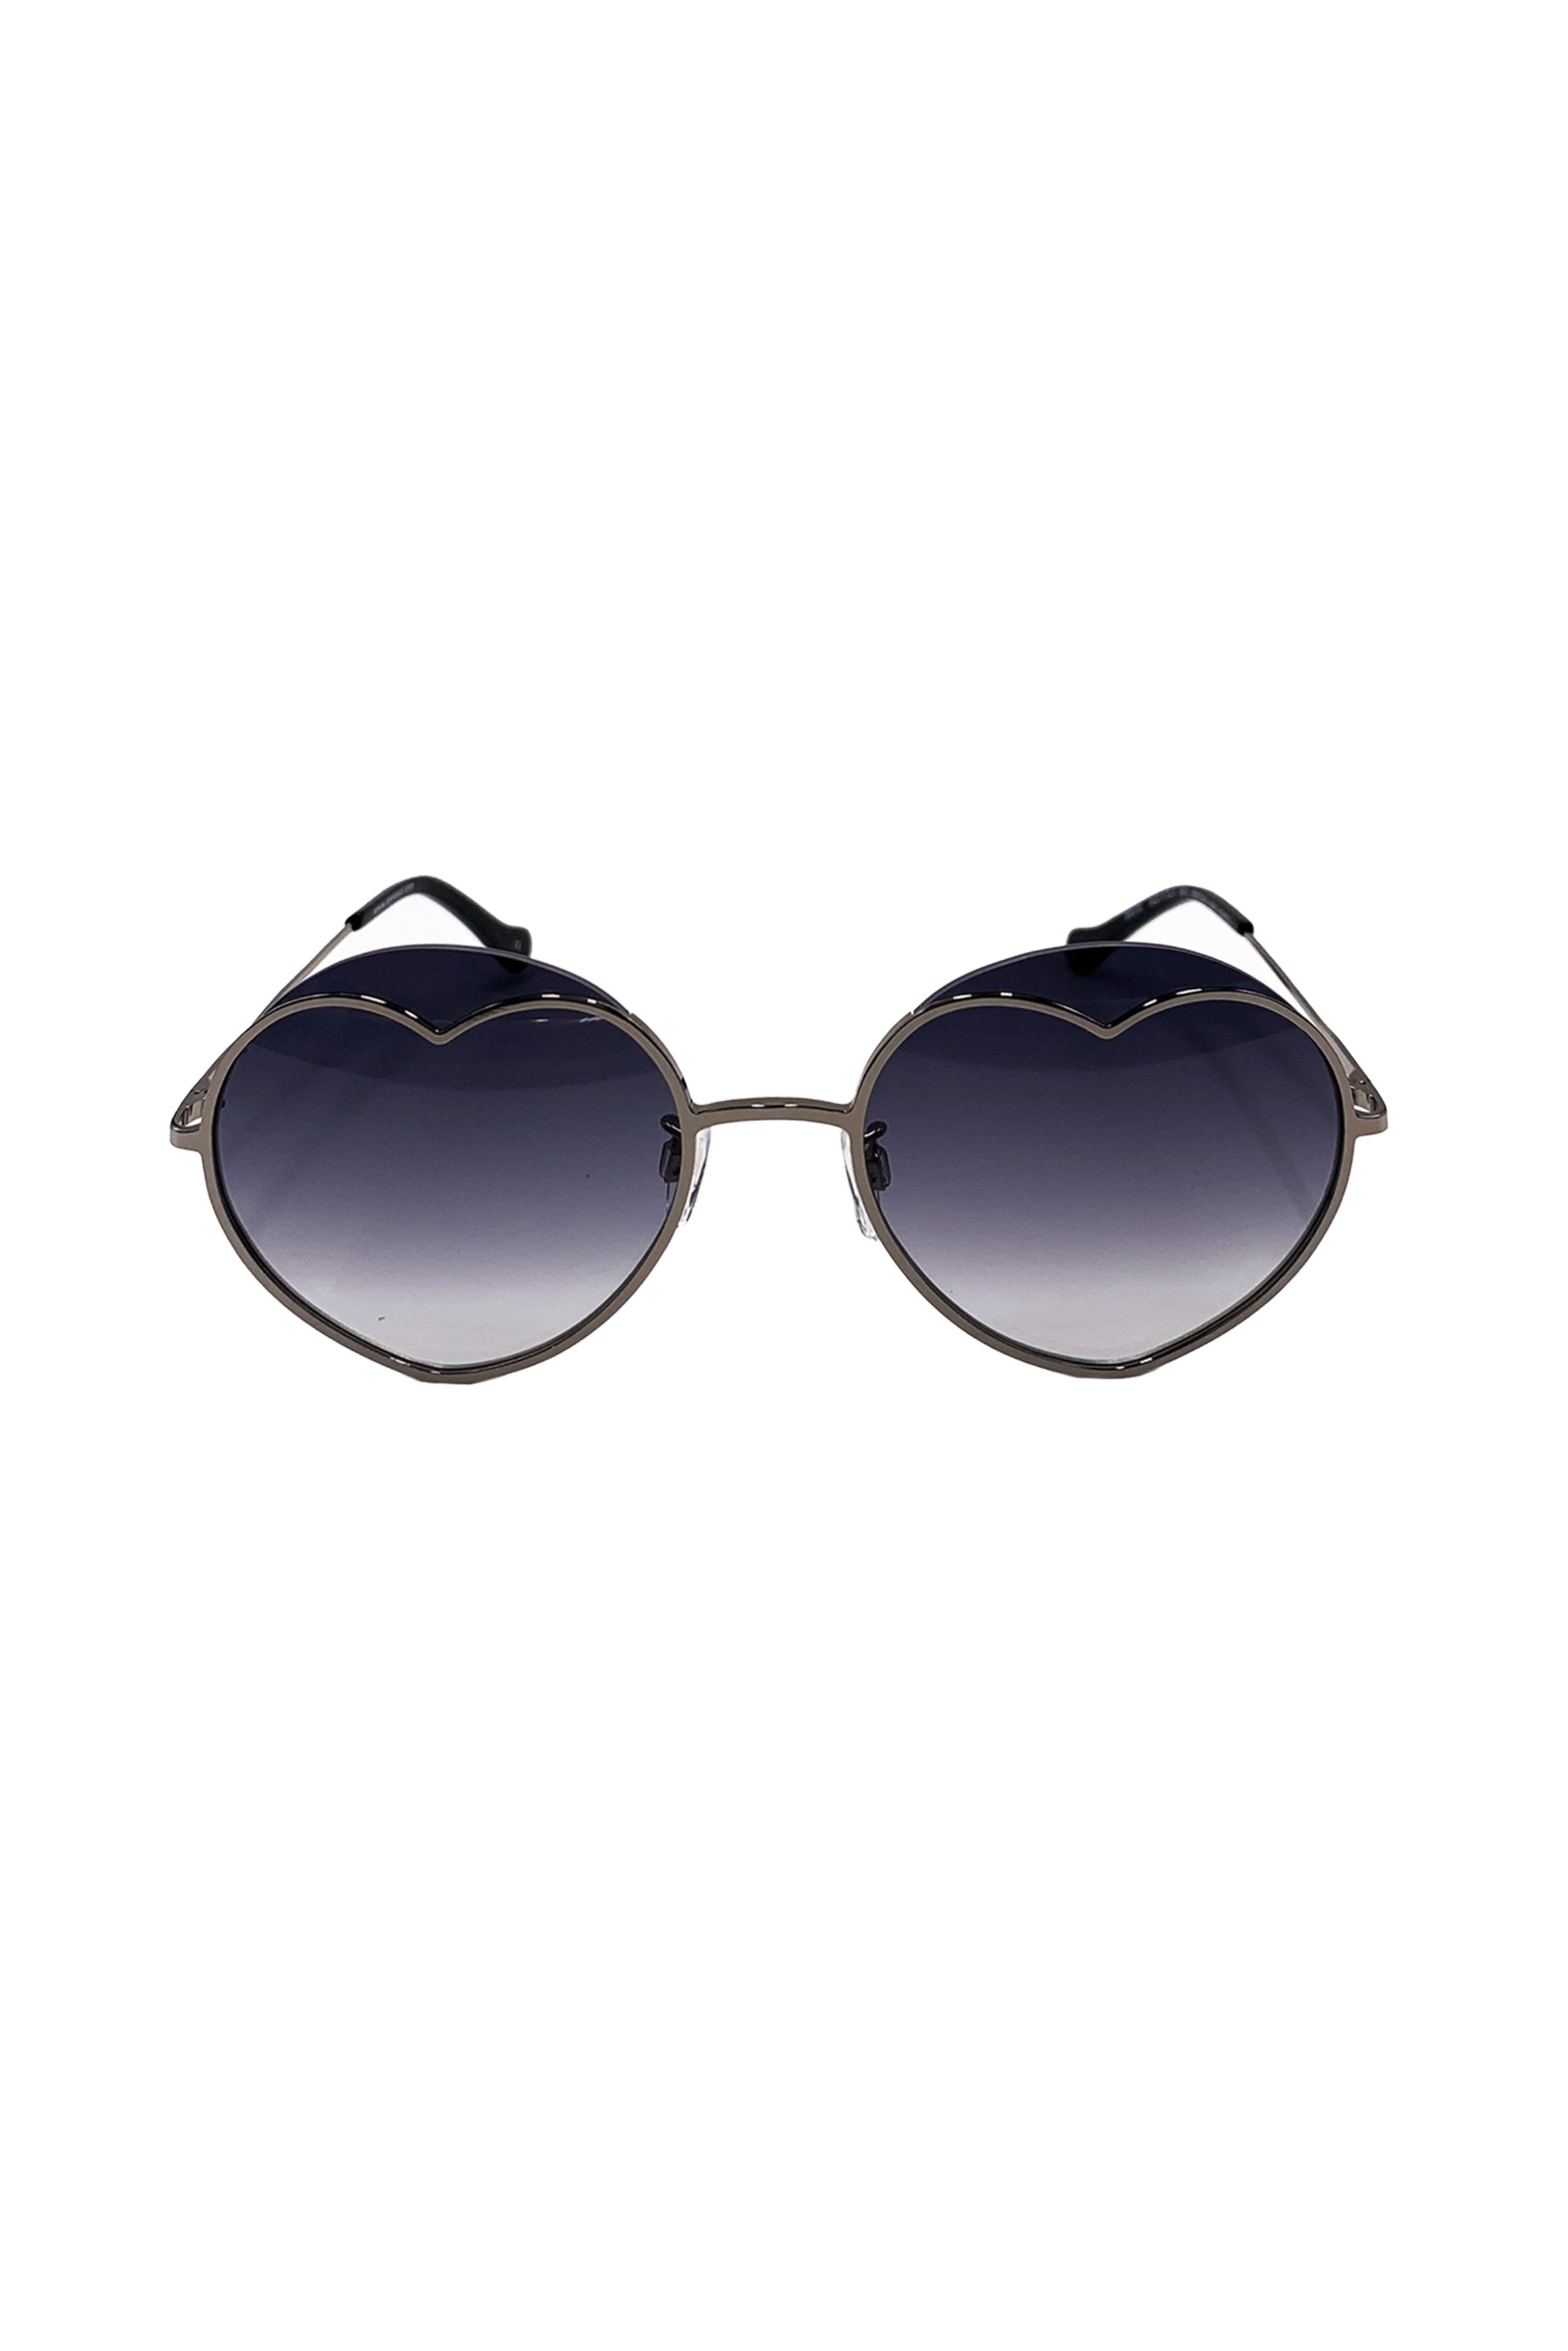 Loveheart Sunglasses <br> in Light Gunmetal </br> - Anna Sui